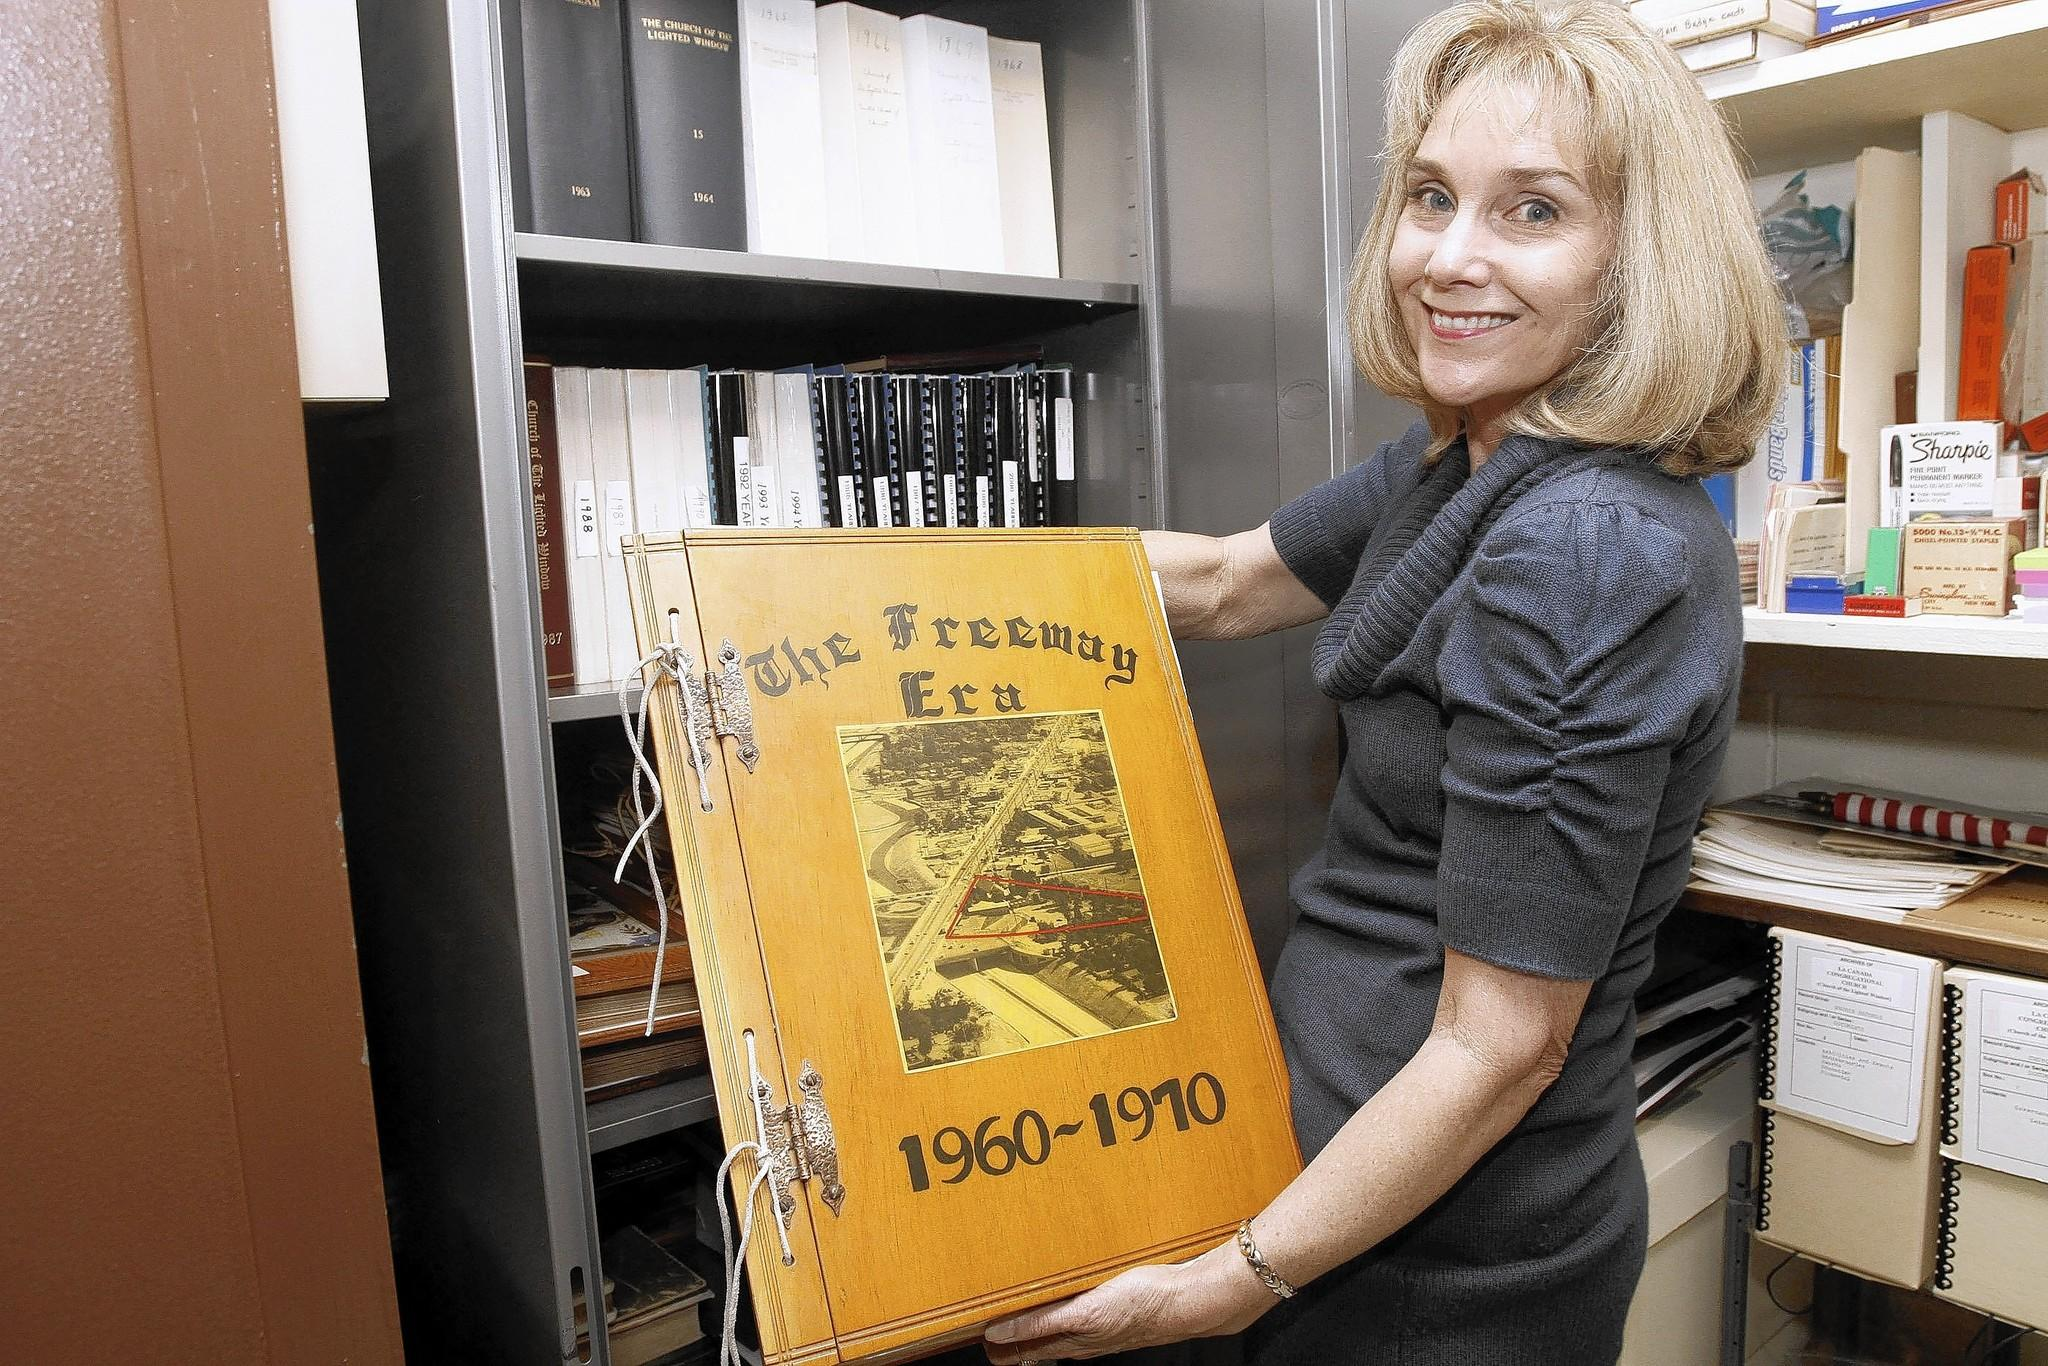 La Cañada Congregational Church book committee member Carol Kulluk shows a 50-year-old scrapbook at the church in La Cañada Flintridge on Tuesday, April 22, 2014.